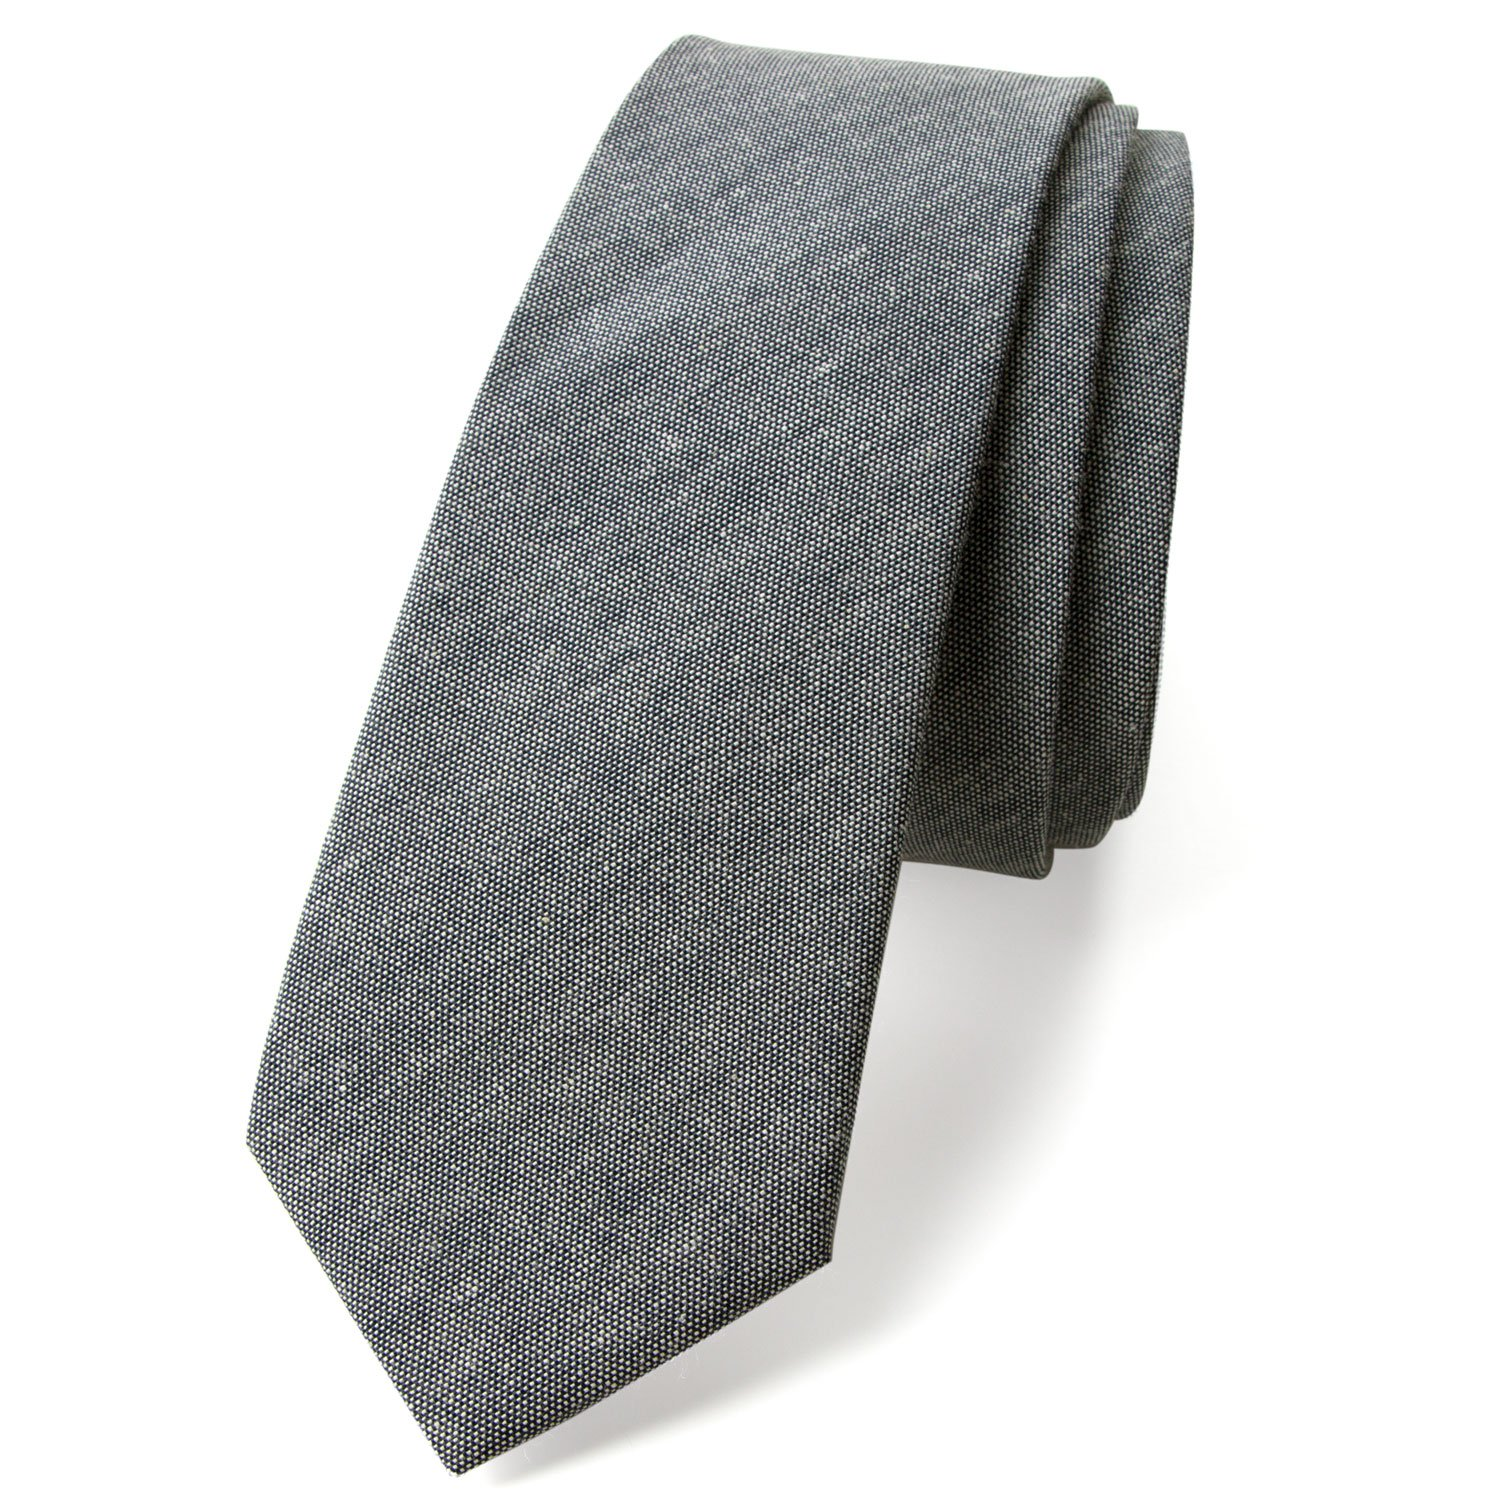 Spring Notion Men's Solid Color Chambray Cotton Skinny Tie, Black